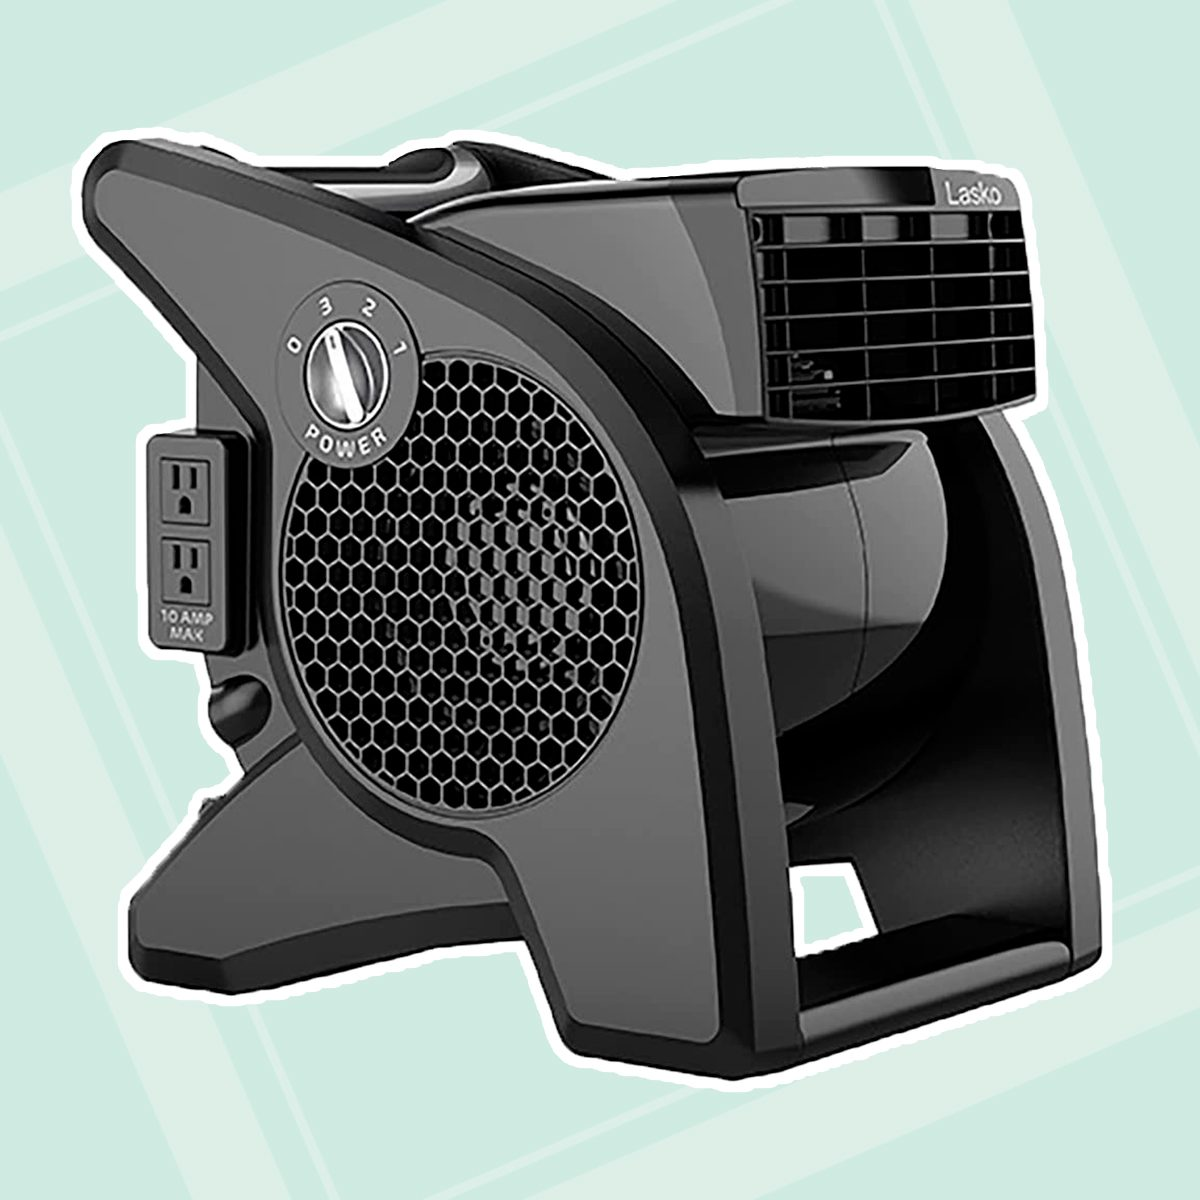 Lasko High Velocity Pro-Performance Pivoting Utility Fan for Cooling, Ventilating, Exhausting and Drying at Home, Job Site and Work Shop, Black Grey U15617